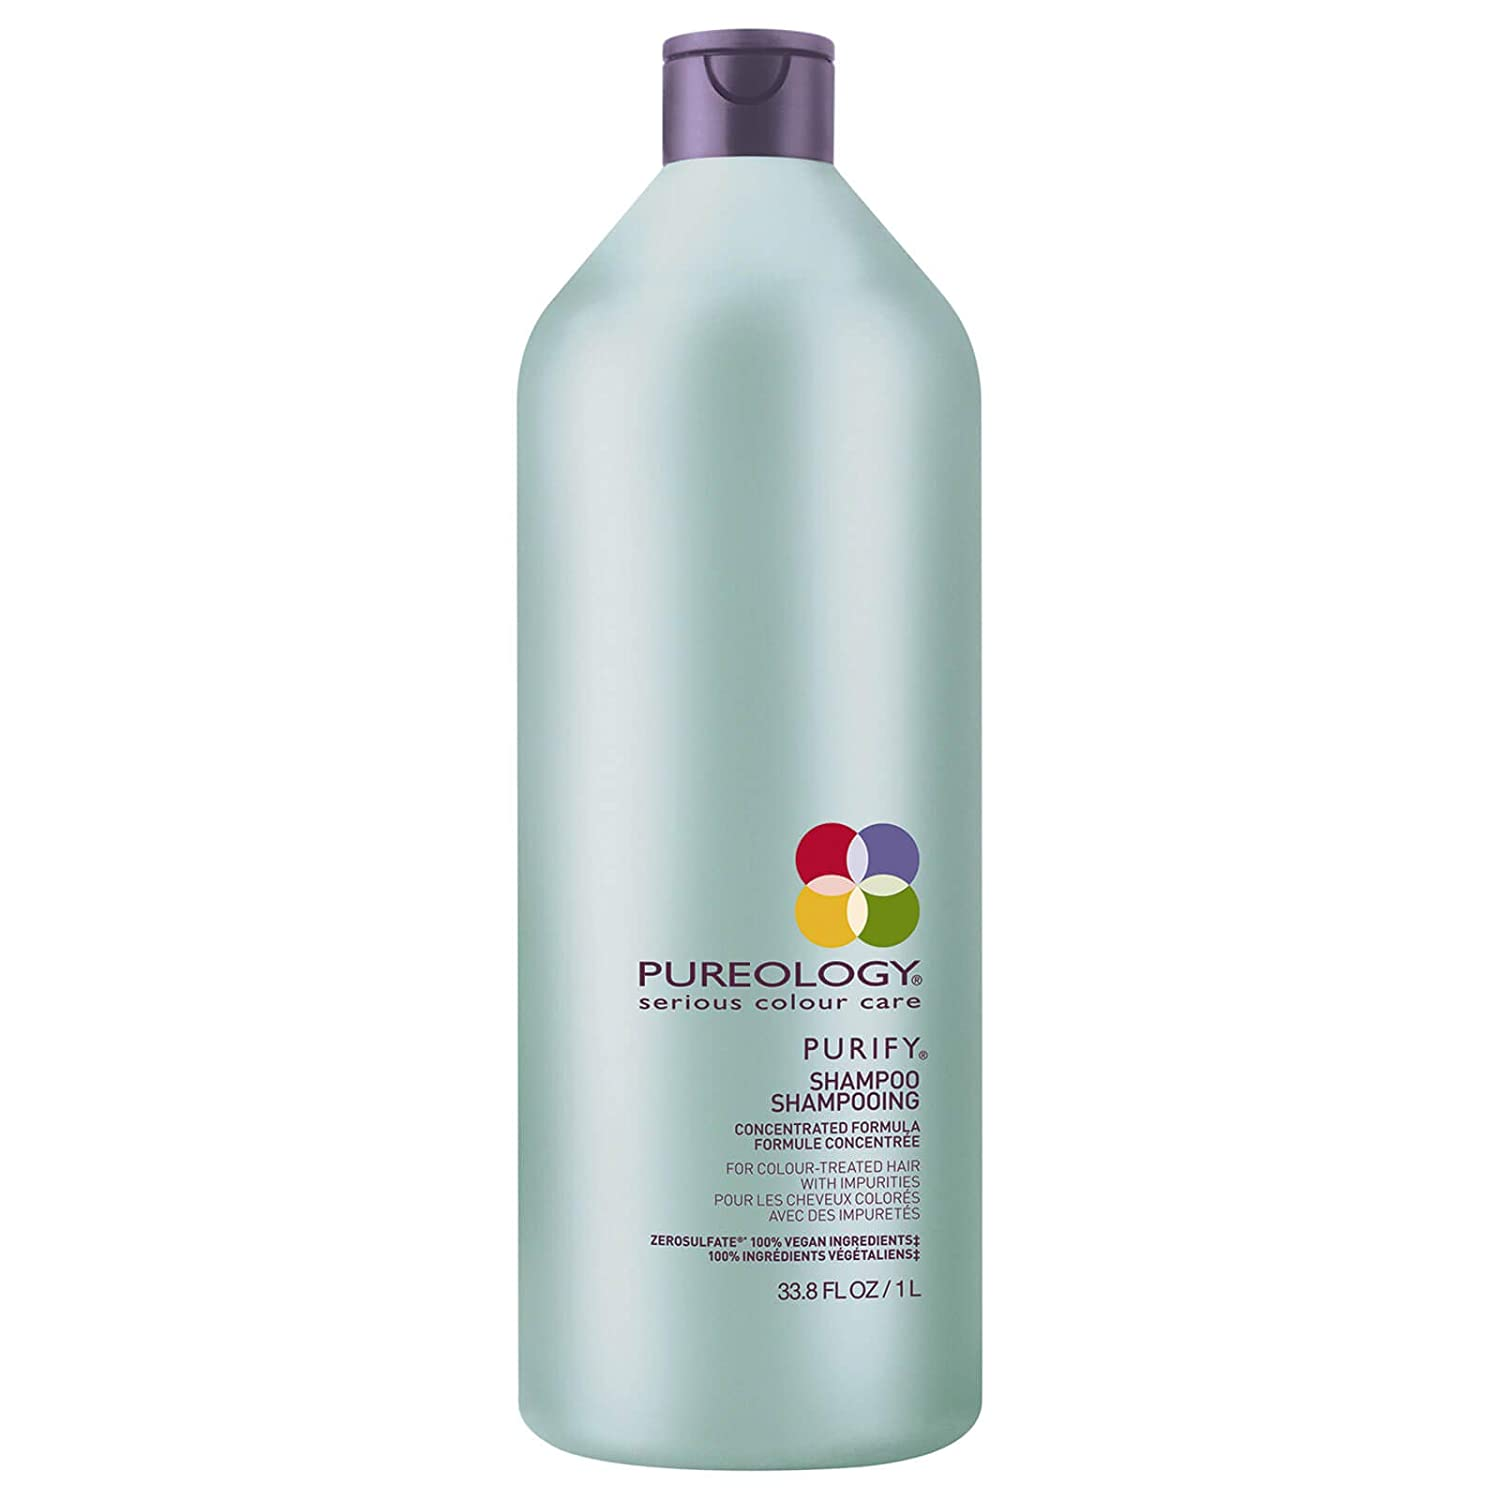 Pureology shampoo amazon